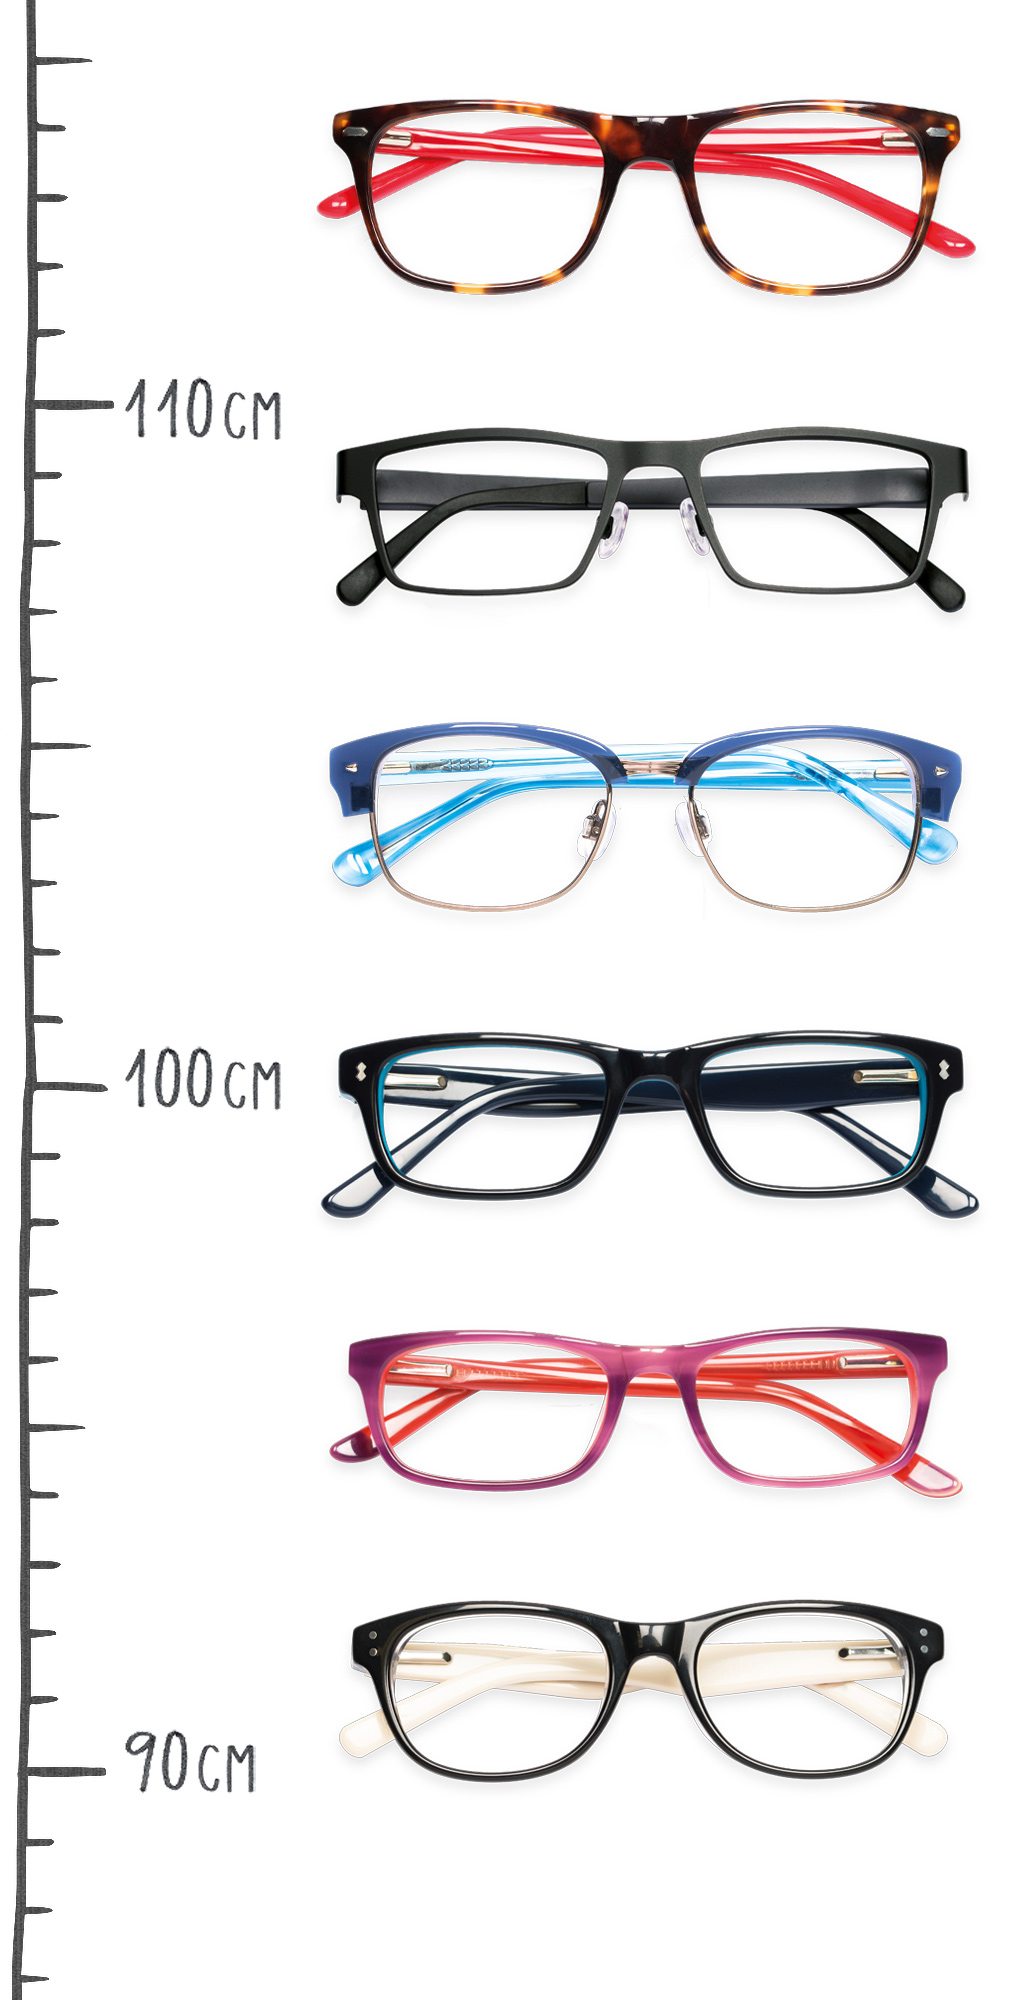 9dbaf32c5723 Kids' & Teens' Glasses | Specsavers UK